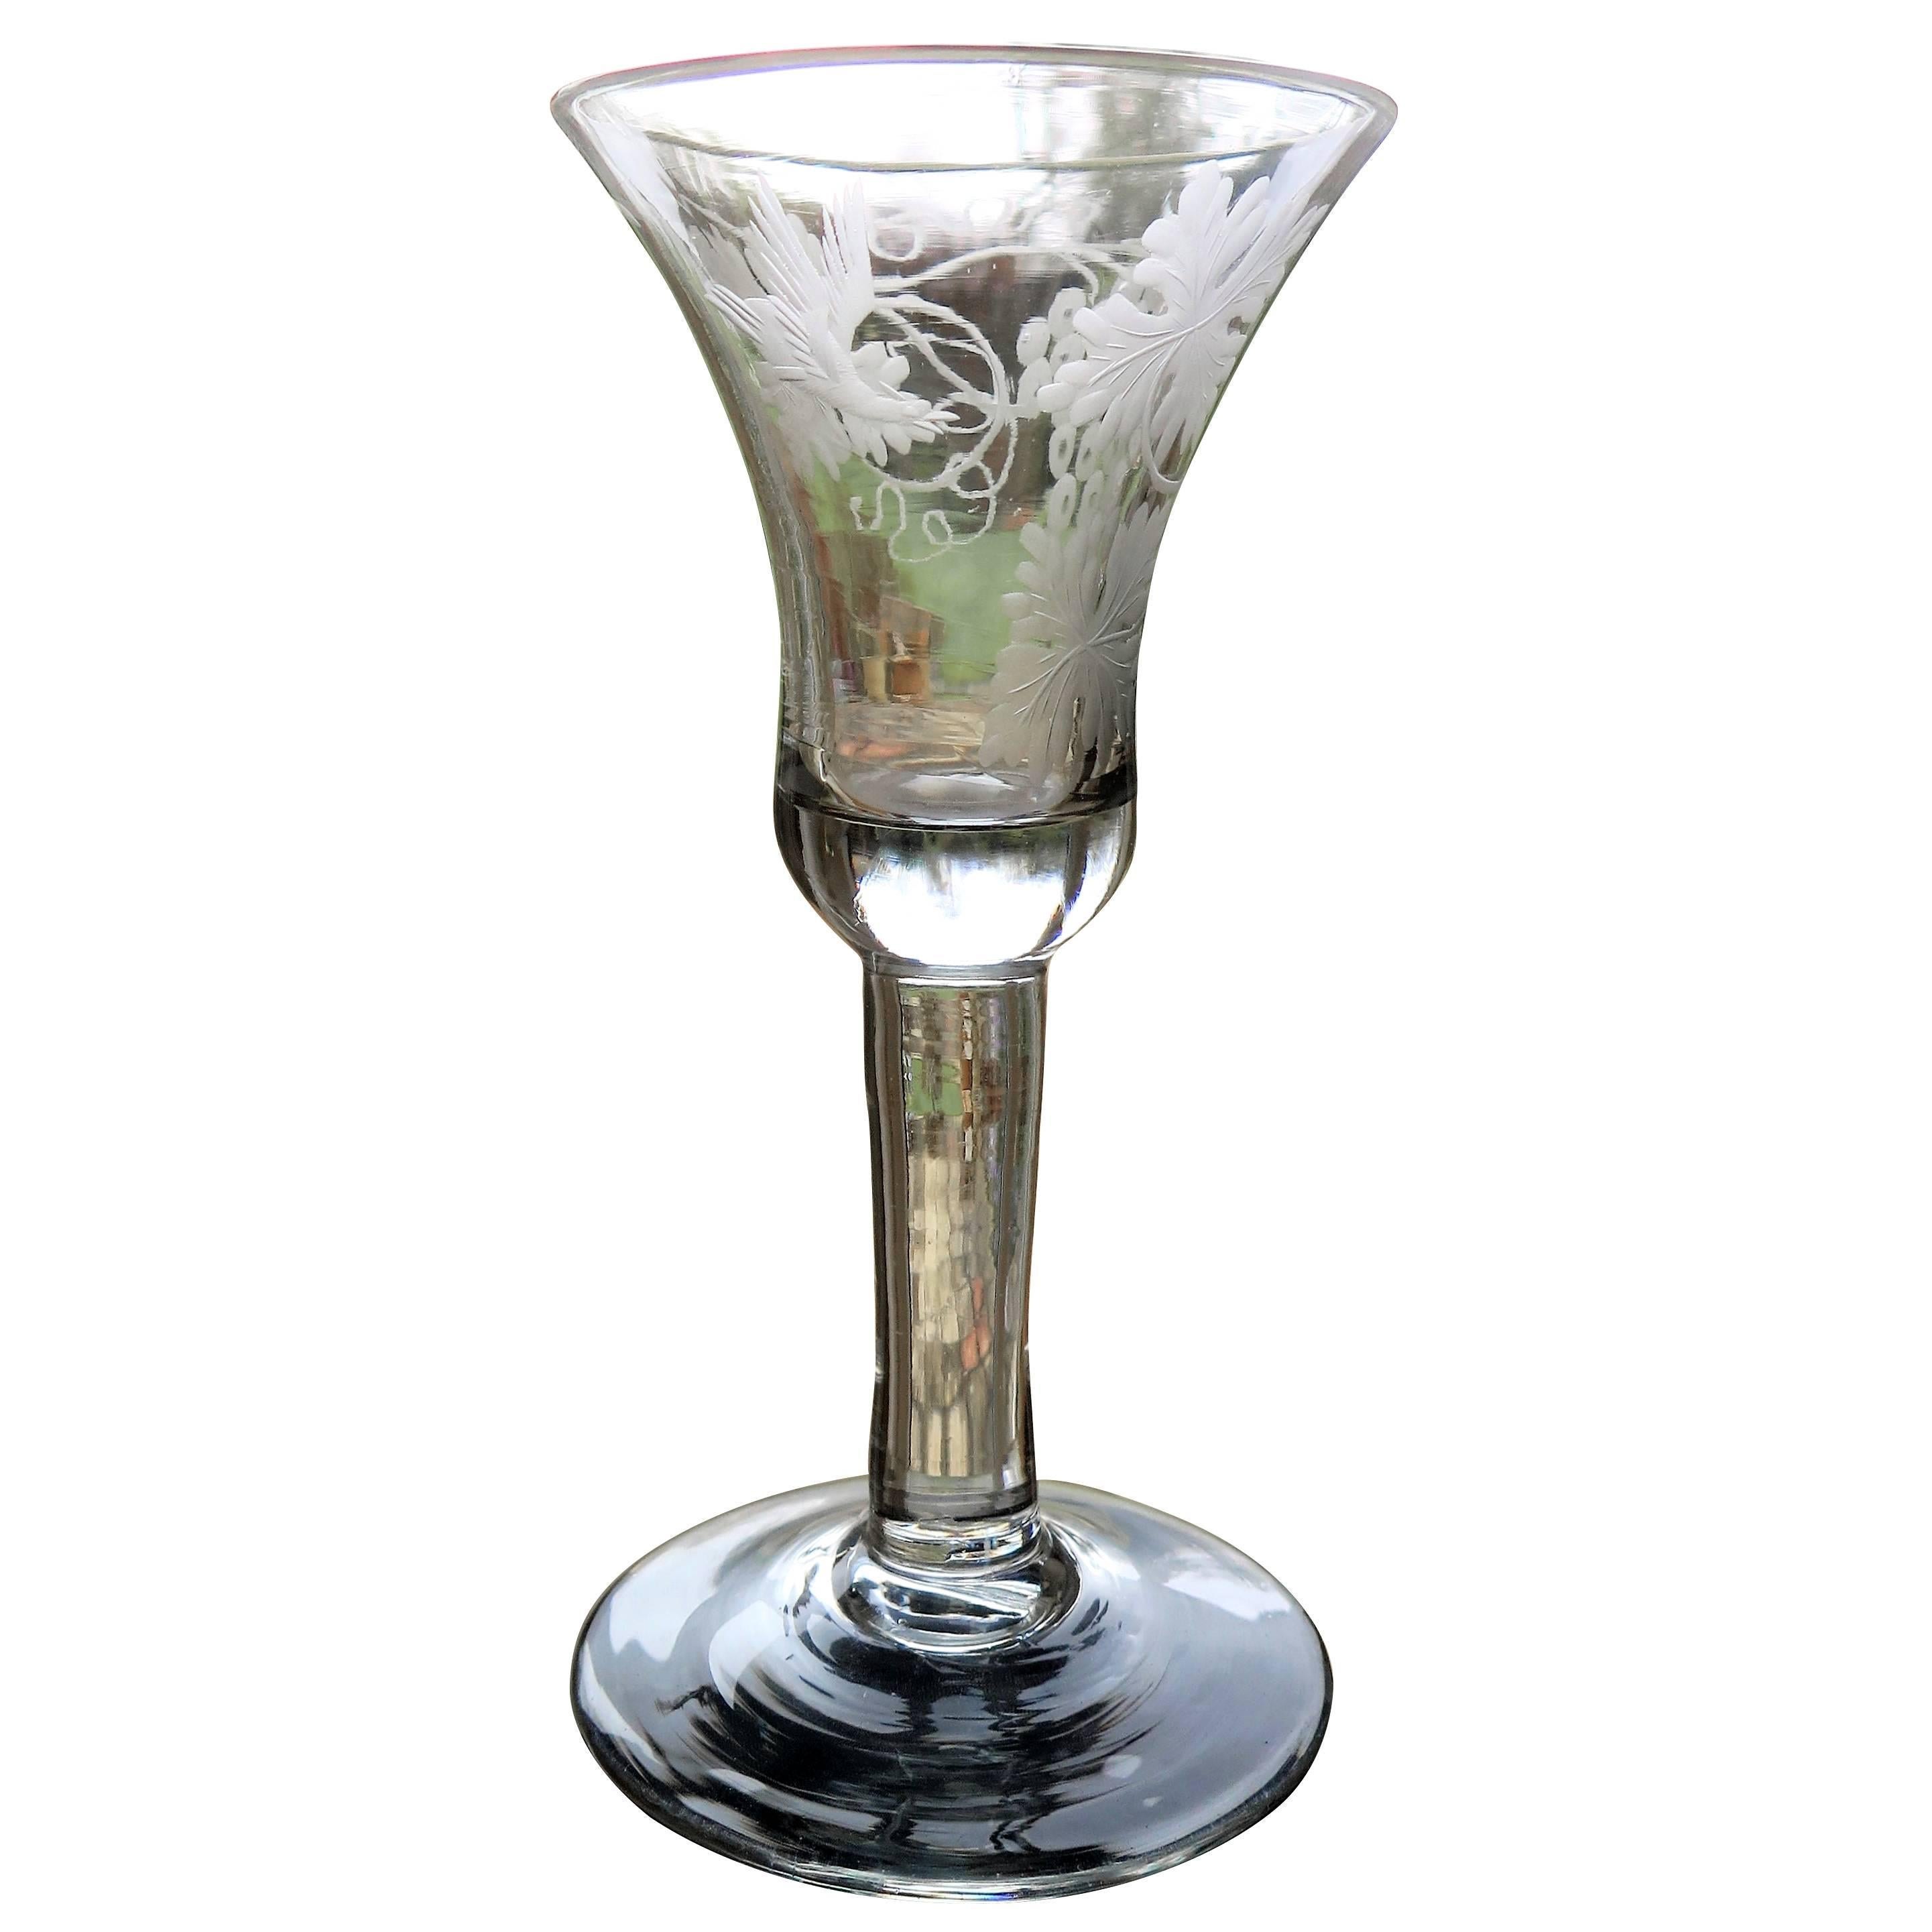 George II English Wine Drinking Glass Engraved Bell Bowl Hand Blown, Circa 1745